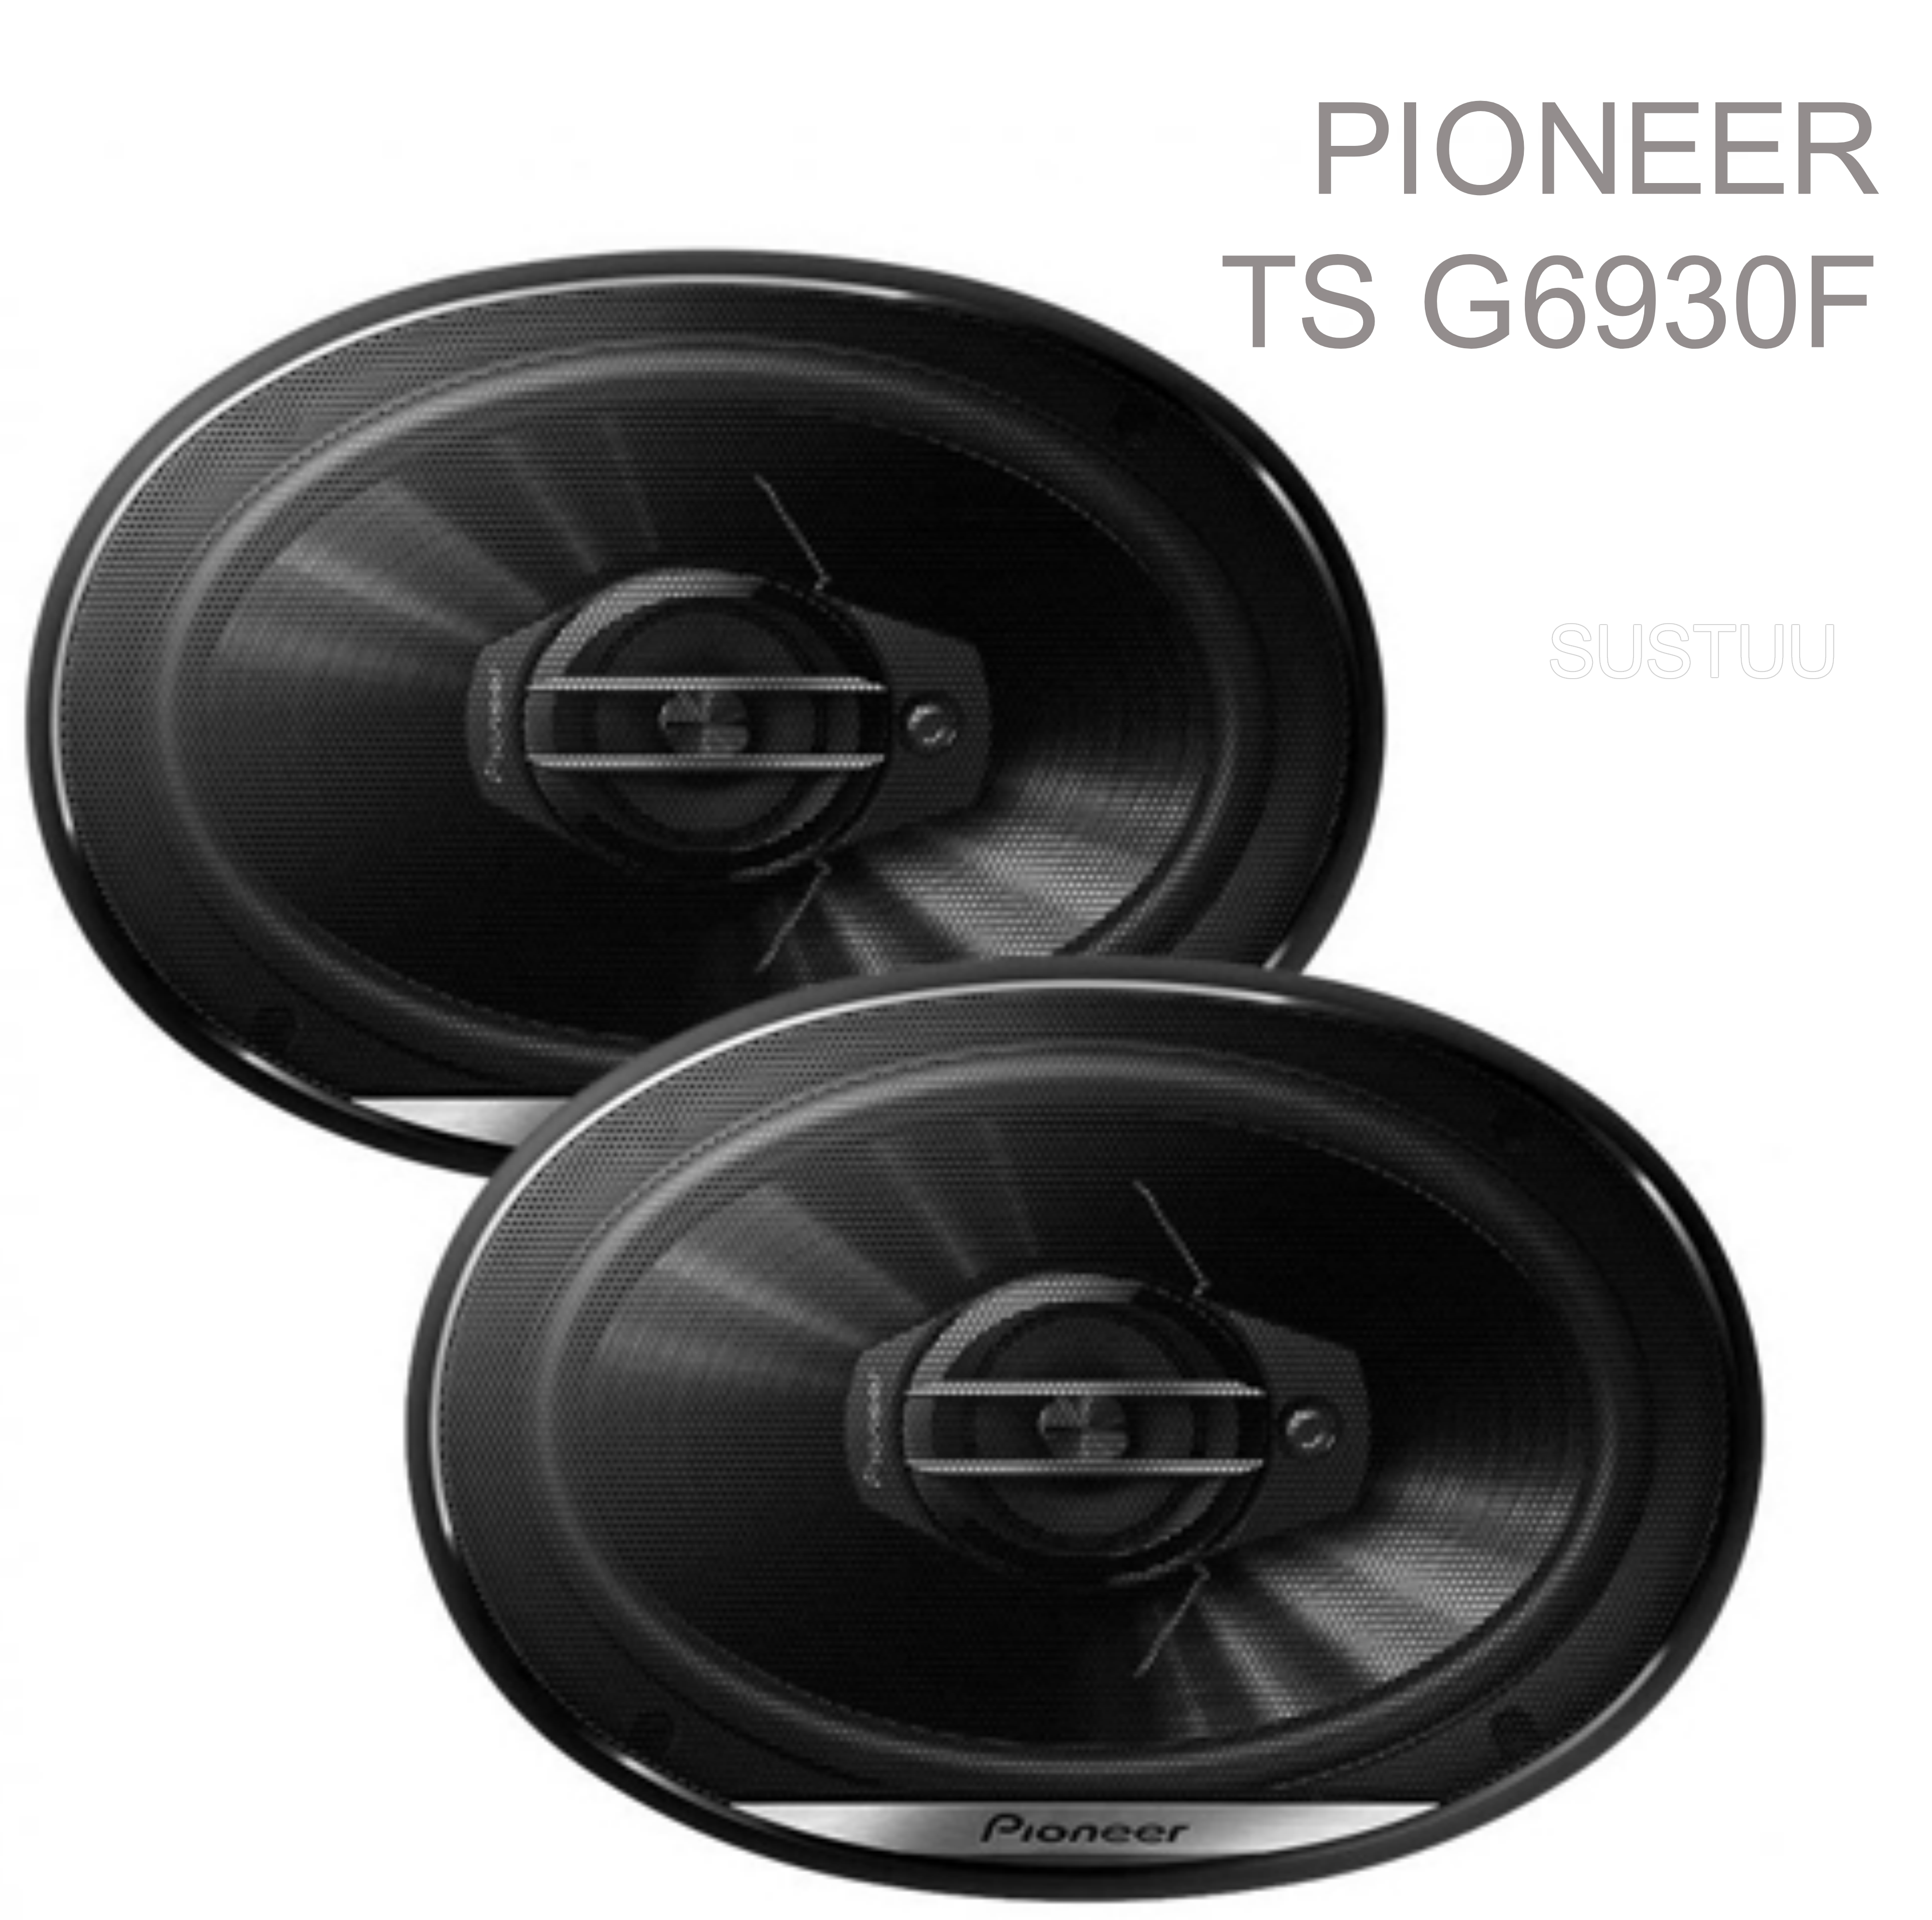 "Pioneer TS G6930F 6x9"" Carbon Graphite Coaxial 3 Way Car Audio Speakers 400W NEW"